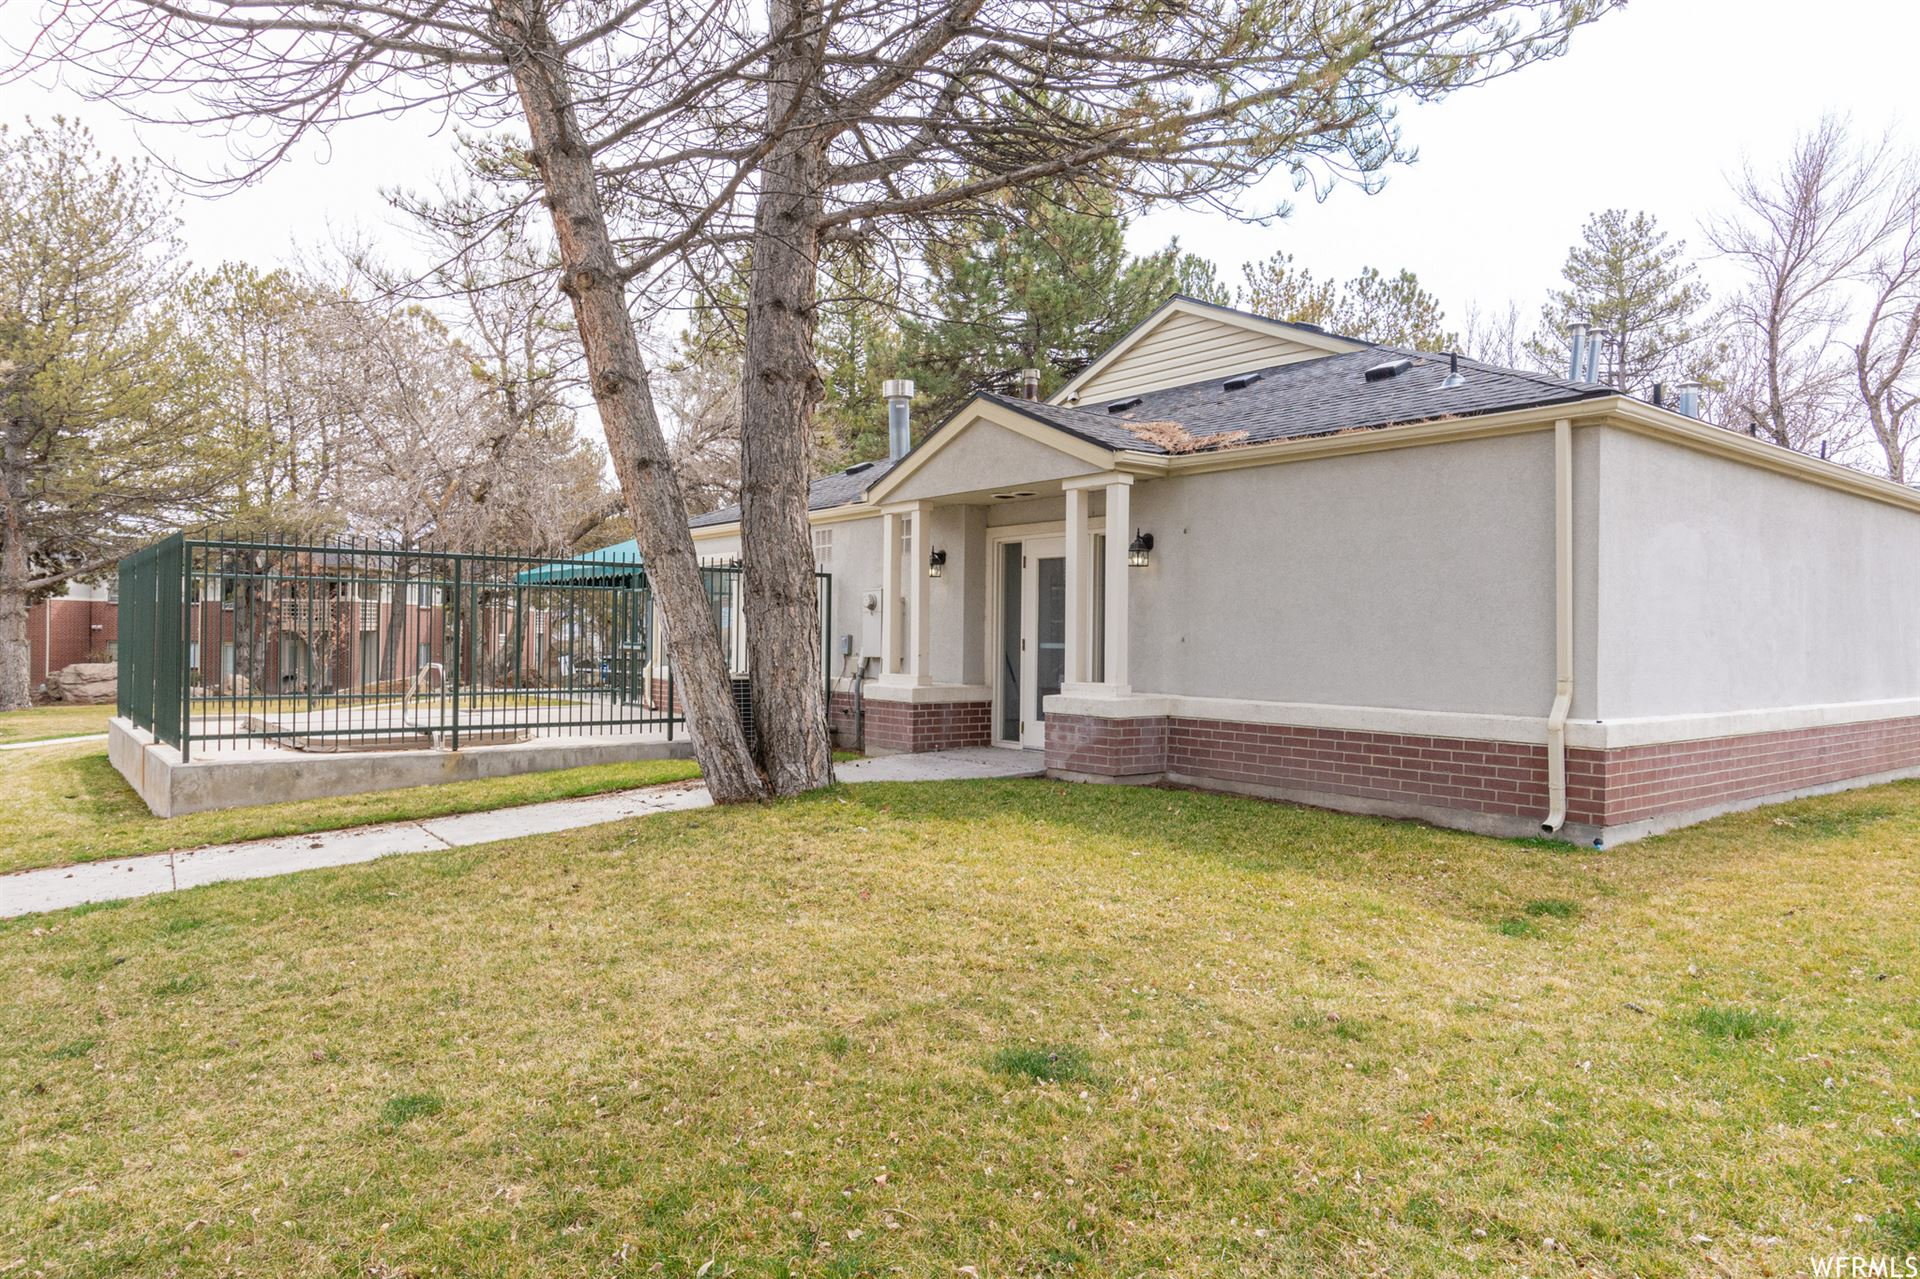 Photo of 1380 W 6690 S #F 101, Murray, UT 84123 (MLS # 1731689)